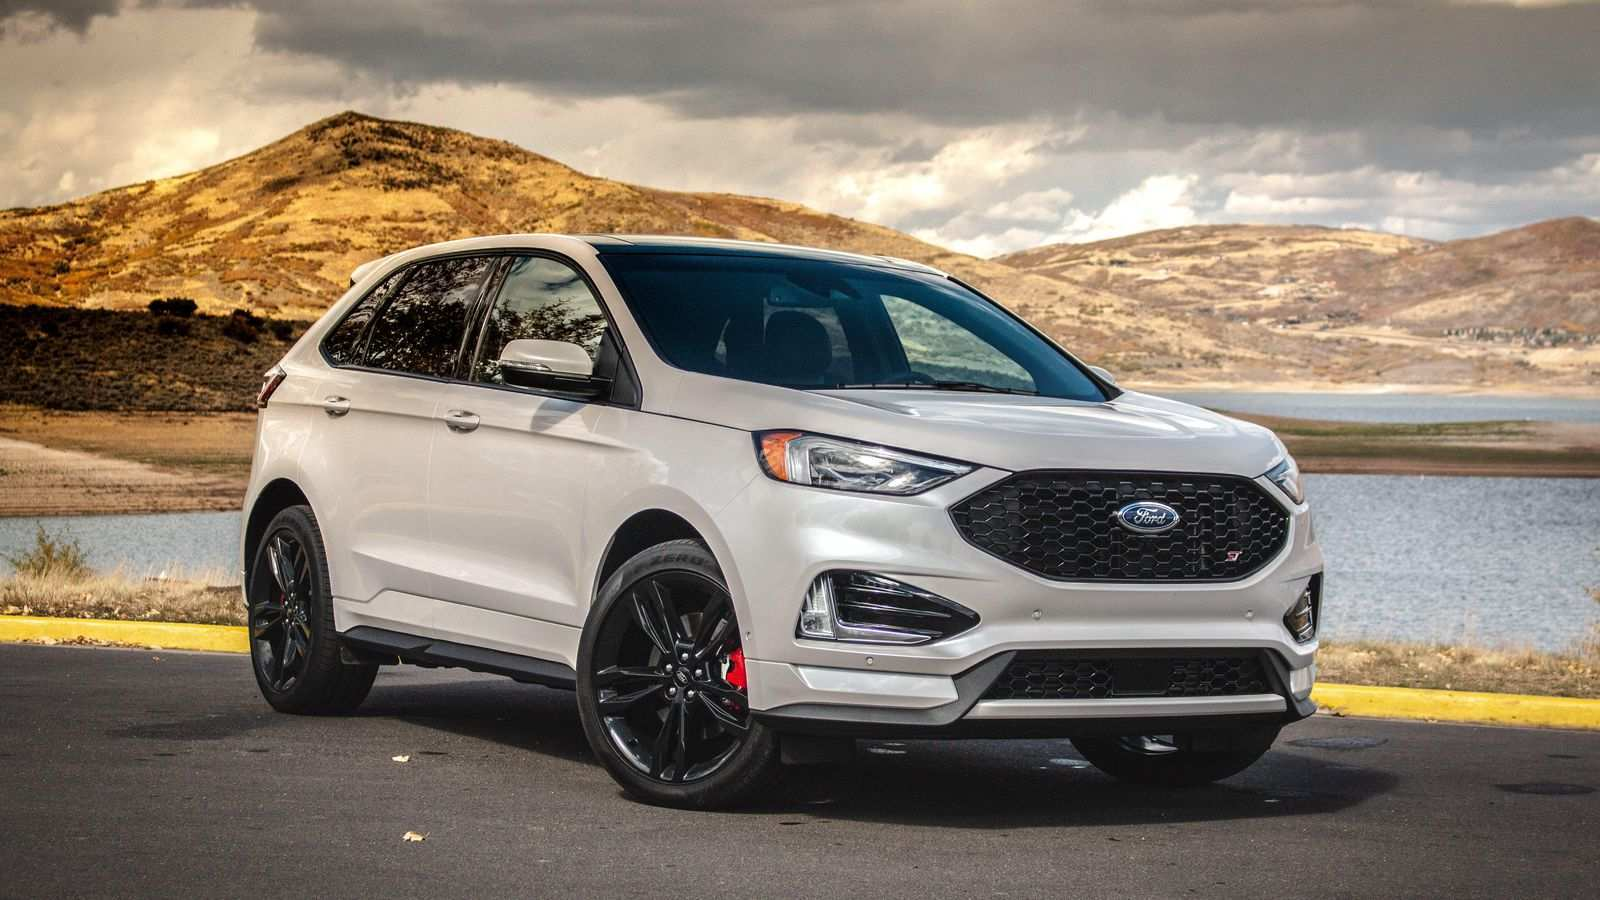 74 The Best 2019 Ford Edge New Model And Performance